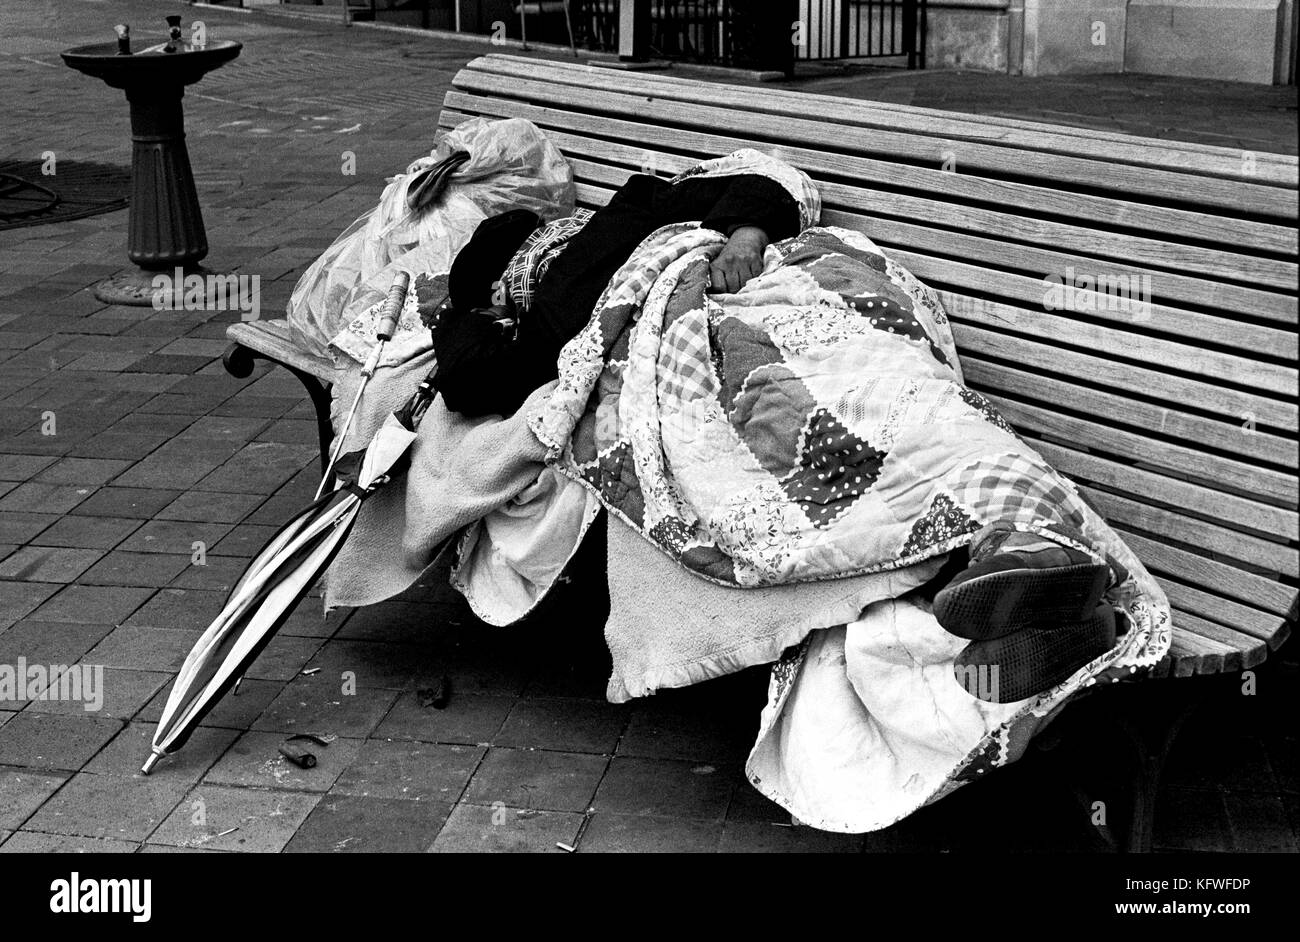 Man sleeping rough on a bench on the streets LA, USA - Stock Image